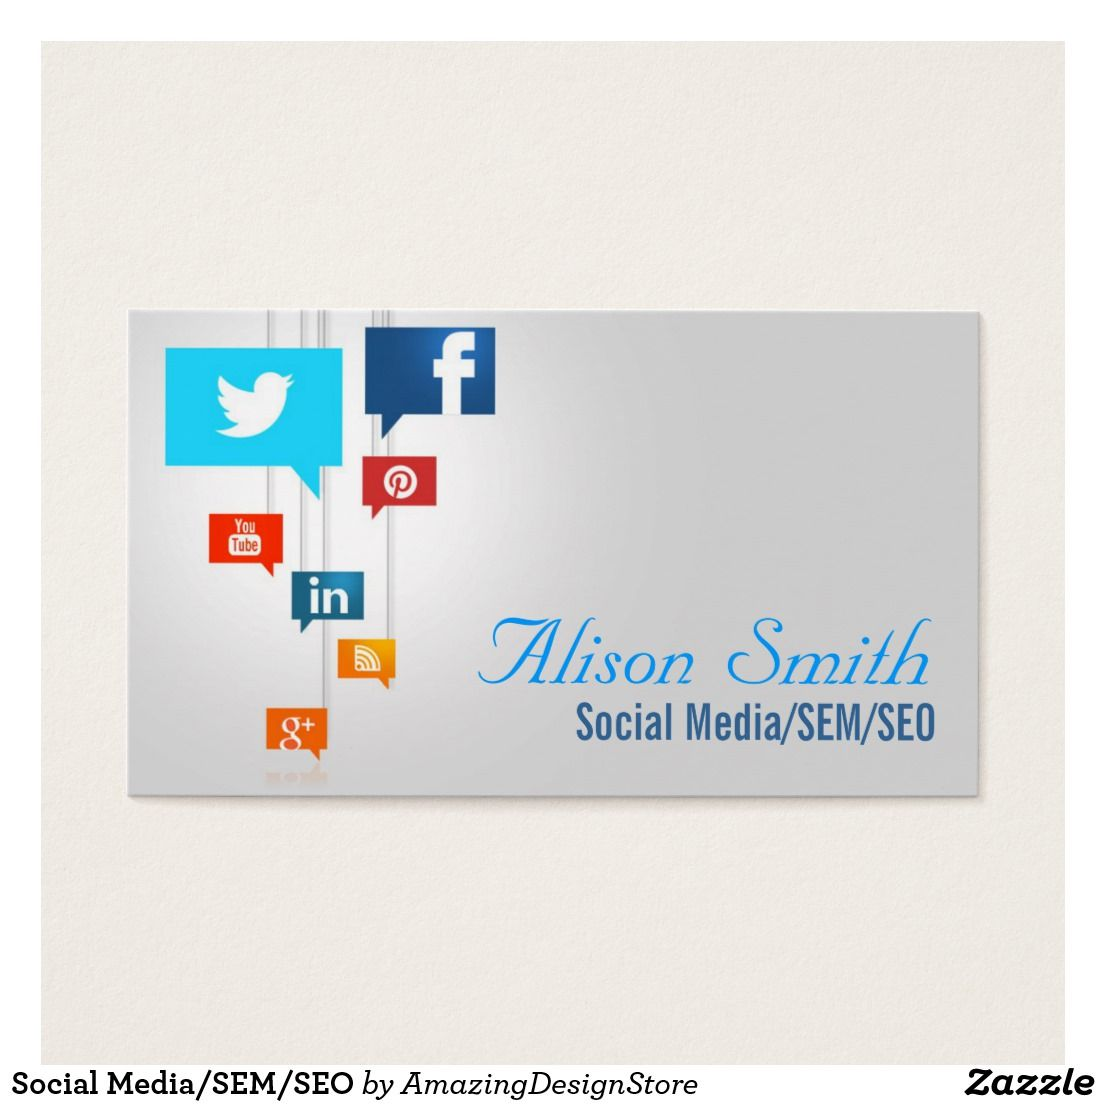 Social Media/SEM/SEO Business Card | Business cards, Seo and Business